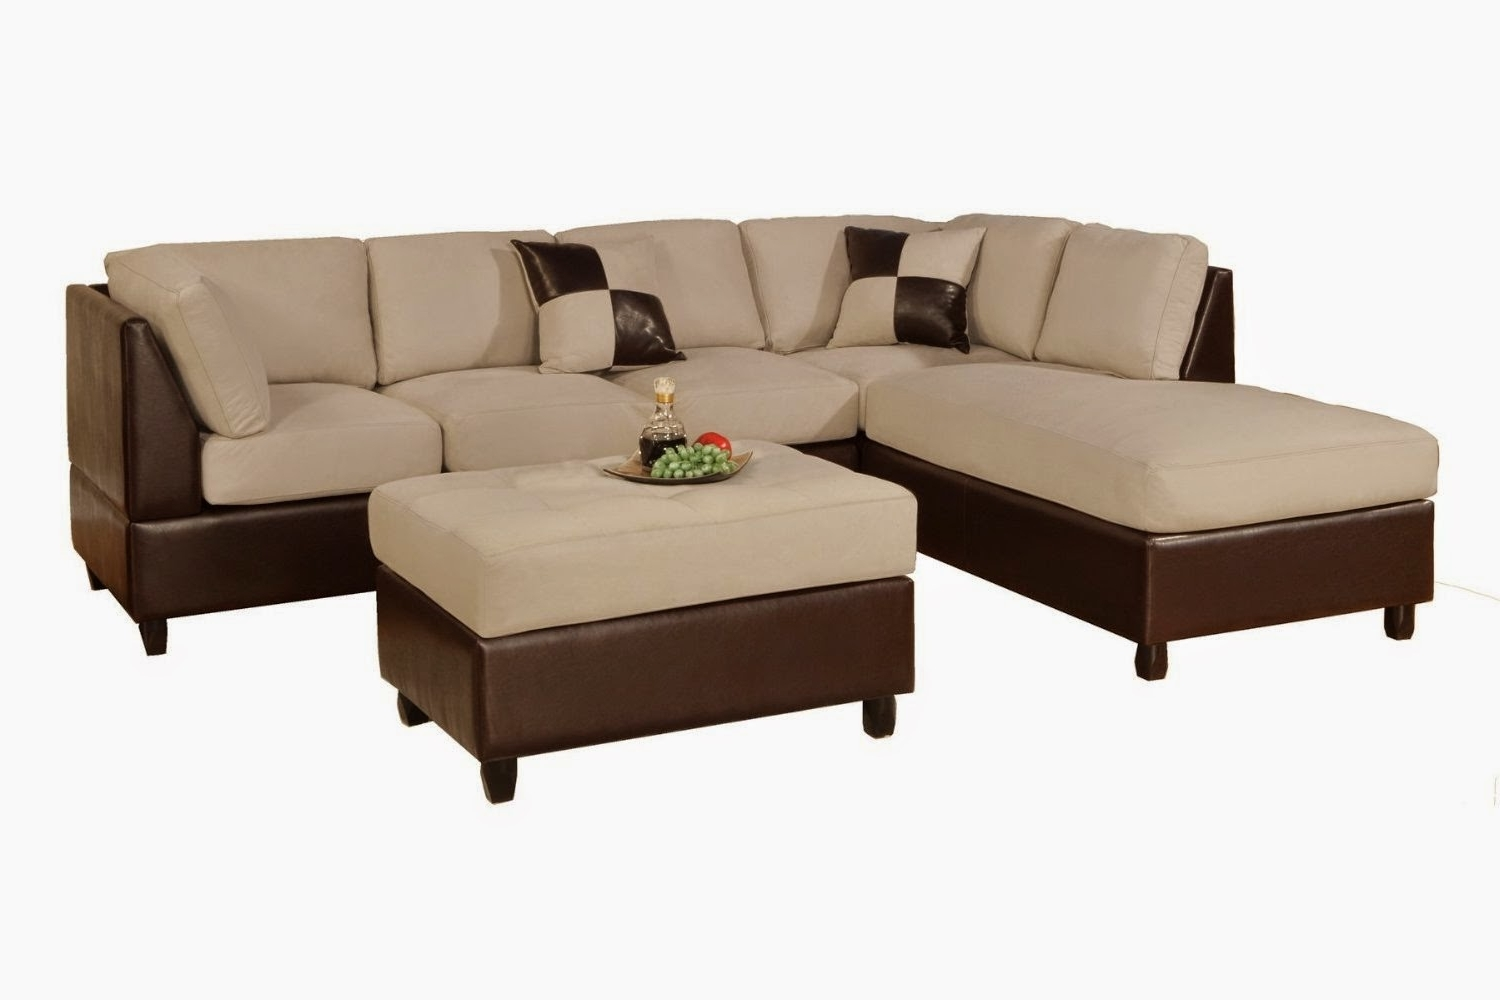 Famous Brown Faux Leather L Shaped Sectional Couch With Left Chaise Pertaining To Leather L Shaped Sectional Sofas (View 19 of 20)